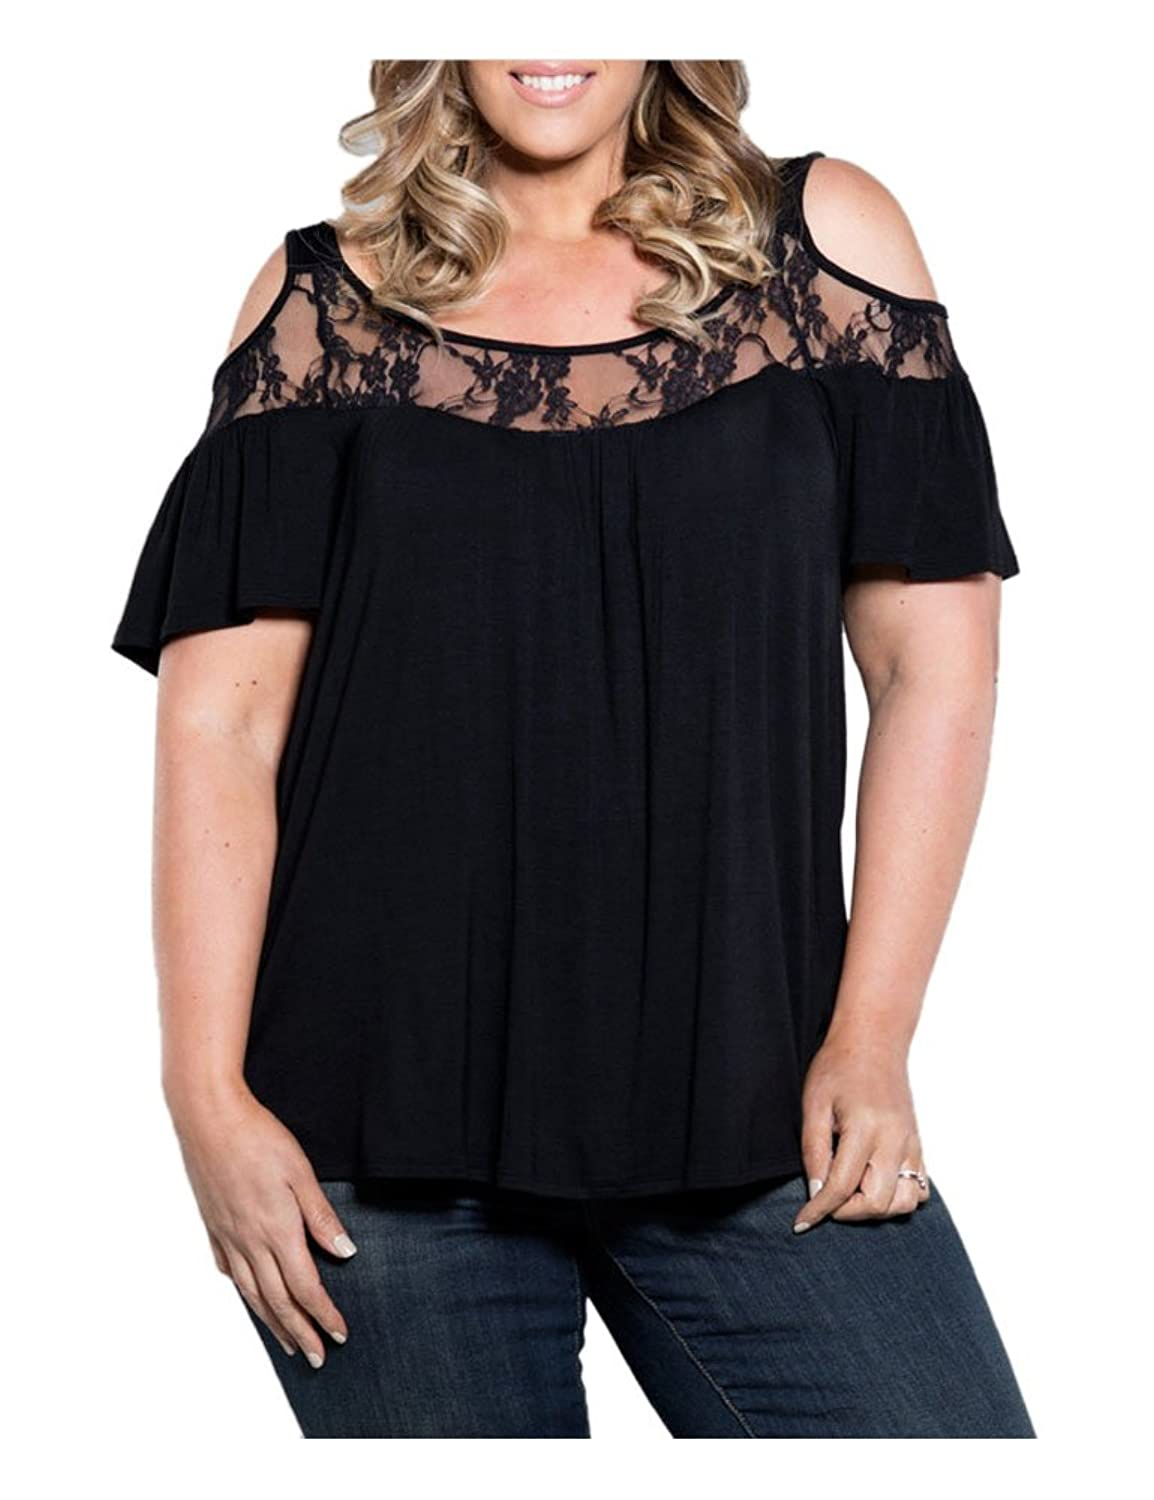 b65dc53bdace08 Features: Plus Size, Cold Shoulder Off, Short Sleeve, Lace Crochet Shirt  Tops